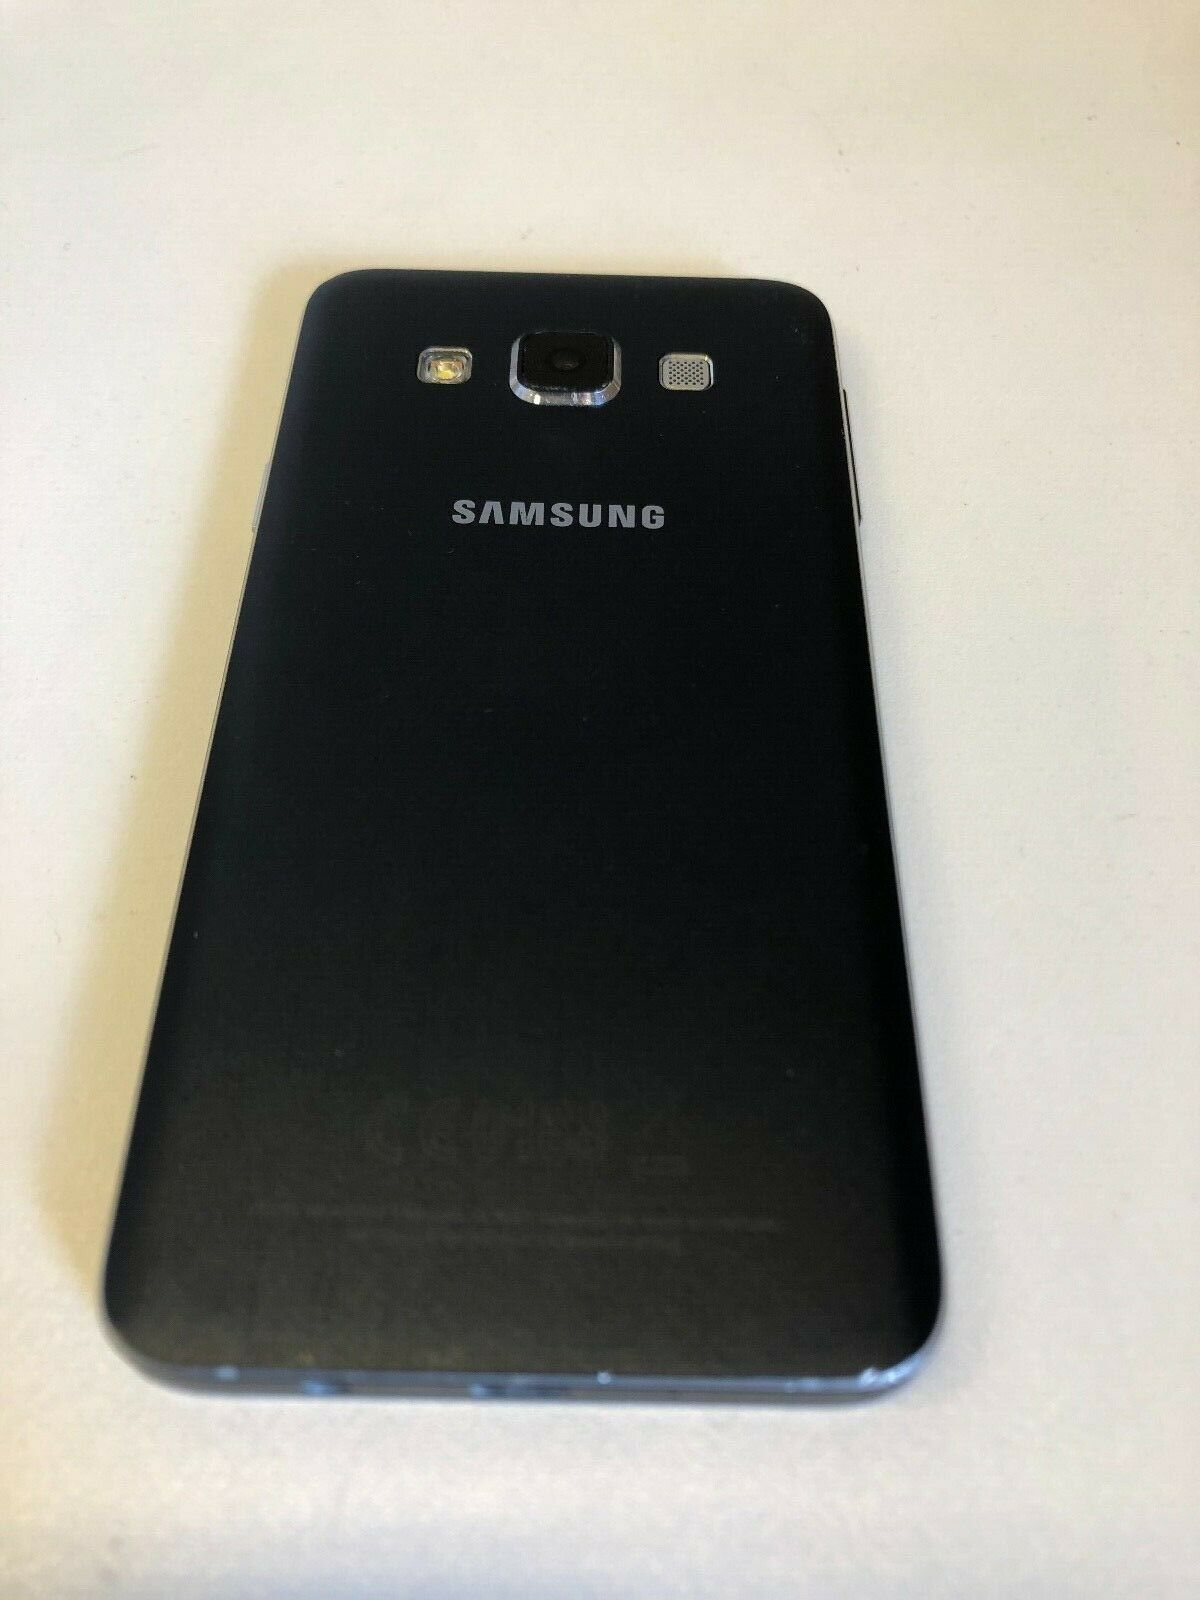 Android Phone - Samsung Galaxy A3 2015 16GB SM-A300FU Unlocked Android Phone Smart phone